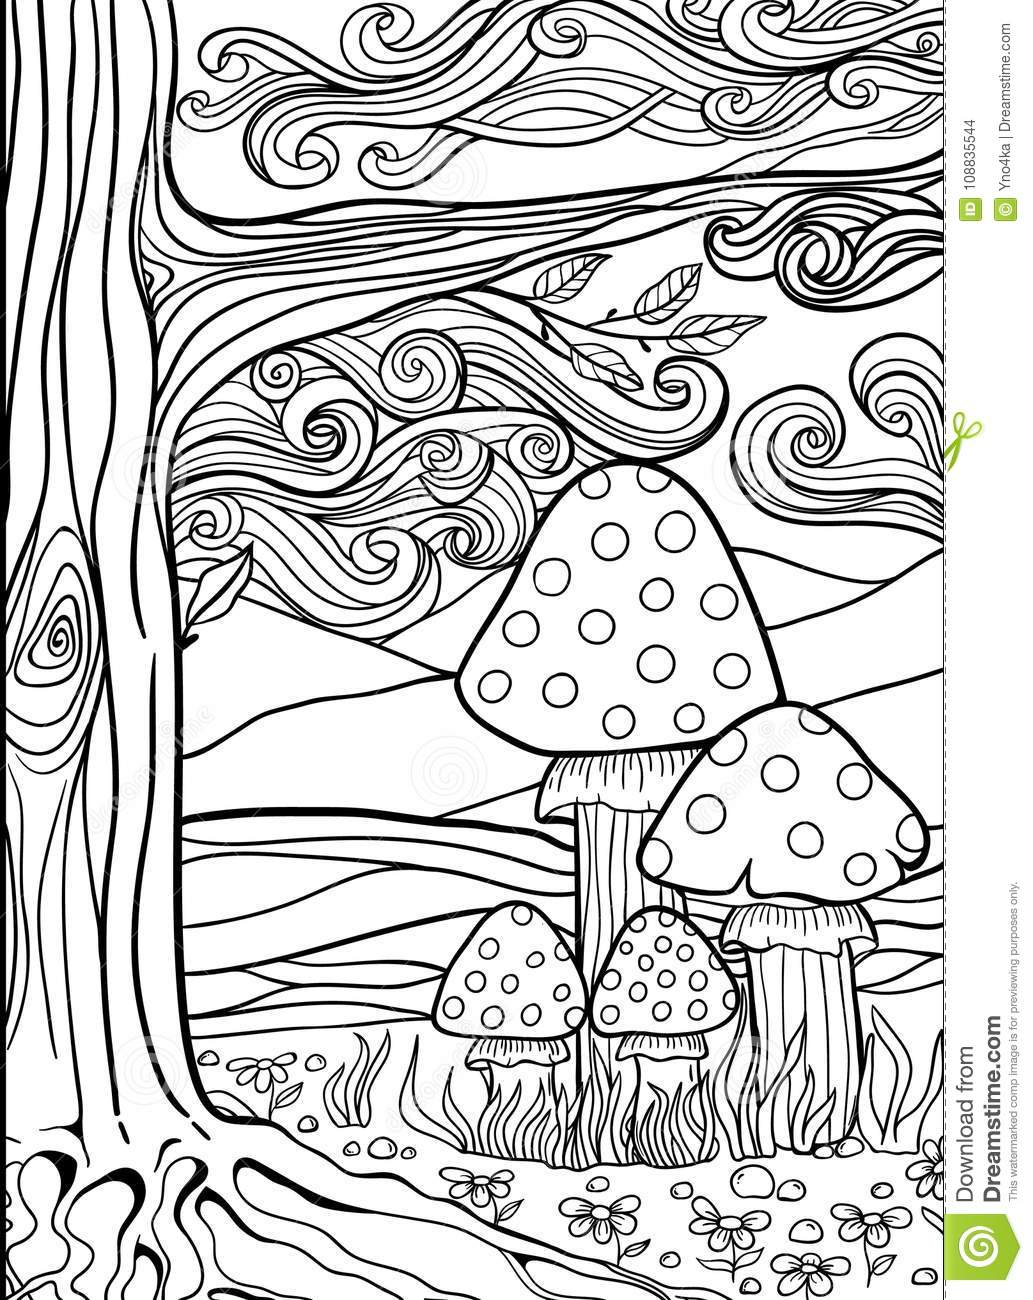 Adult Anti Stress Coloring Page Doodle Stock Illustration ...